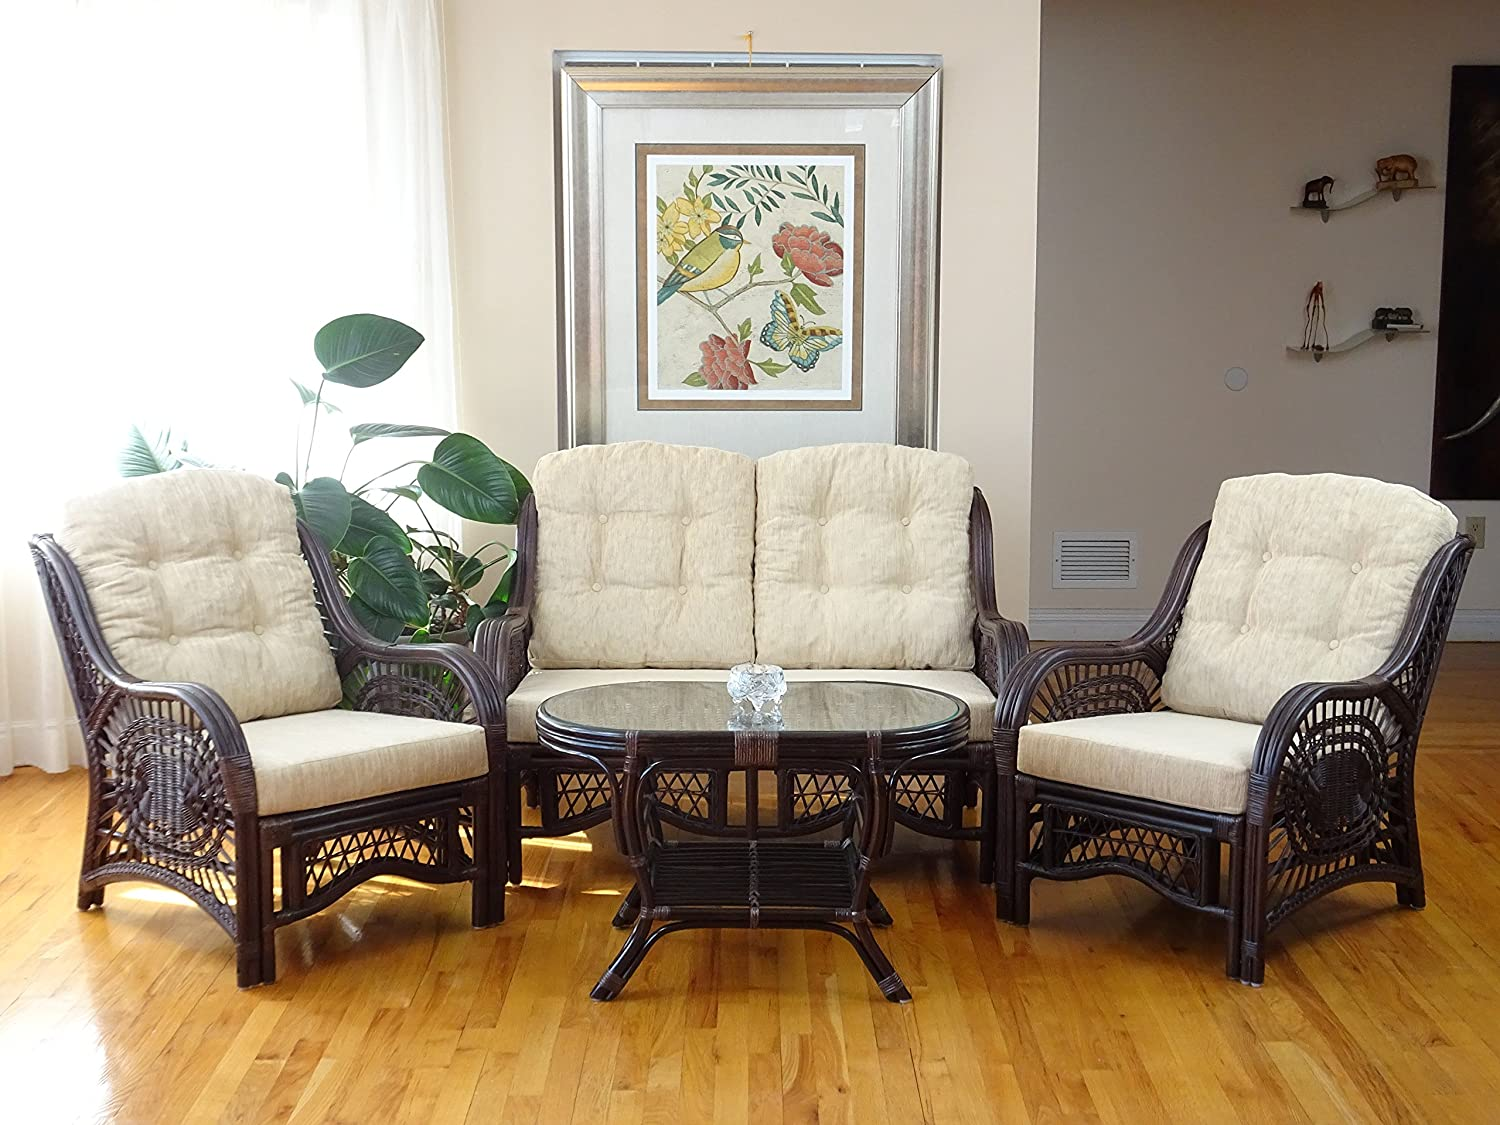 Malibu Rattan Wicker Living Room Set 4 Pieces 2 Lounge Chair Loveseat sofa Coffee Table Dark Brown Cream Cushions